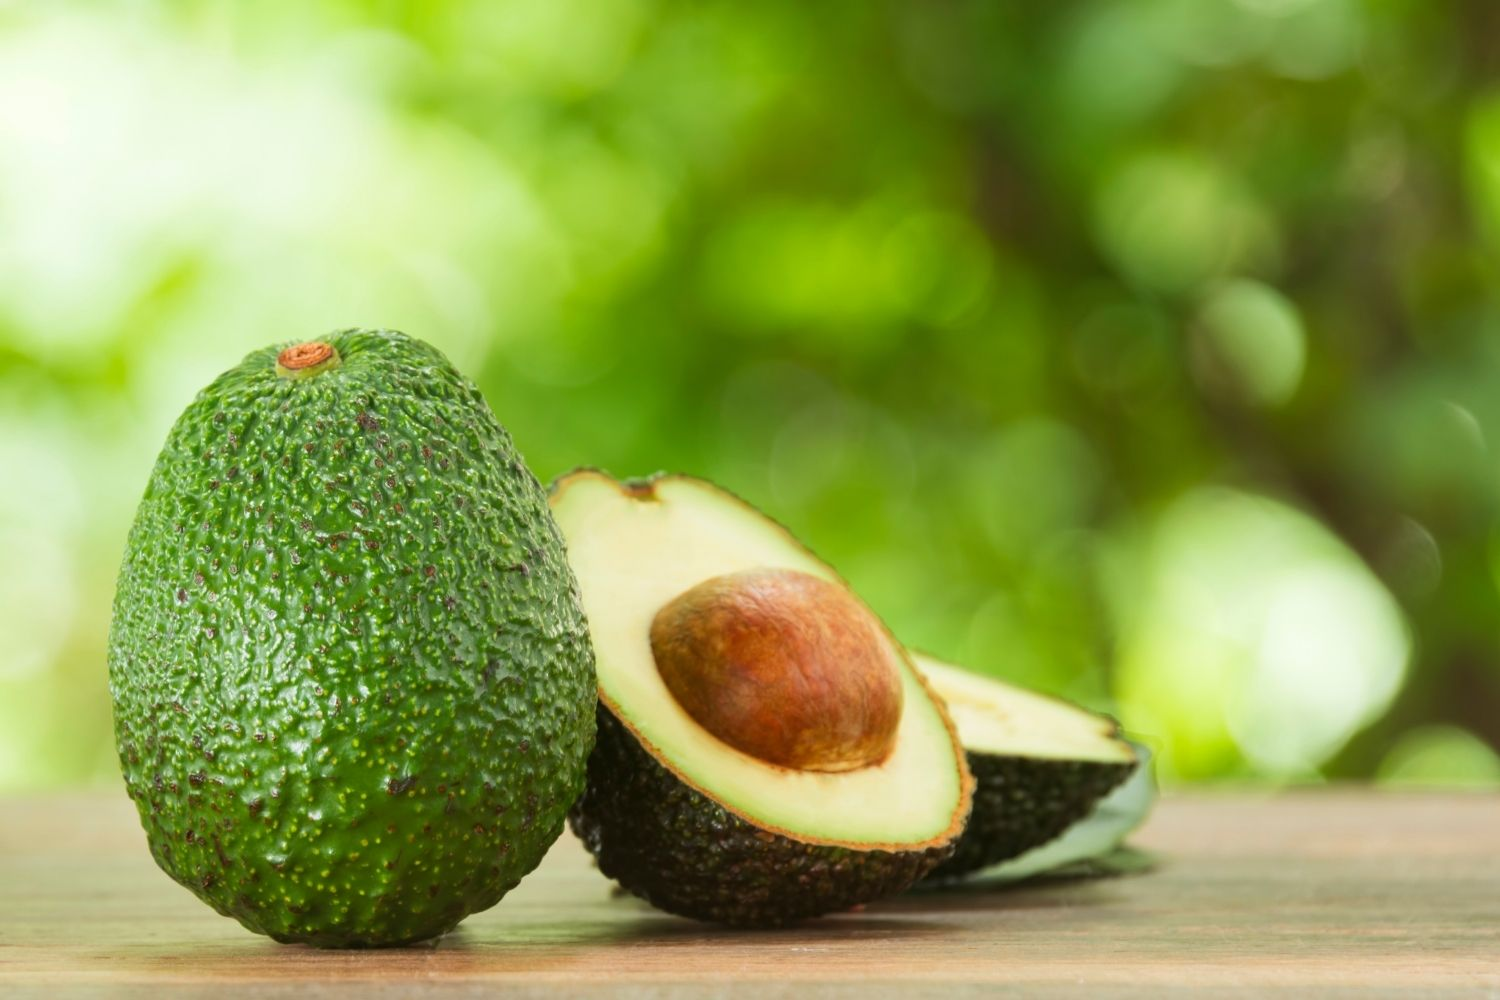 What Is the Health Benefits of Avocado?